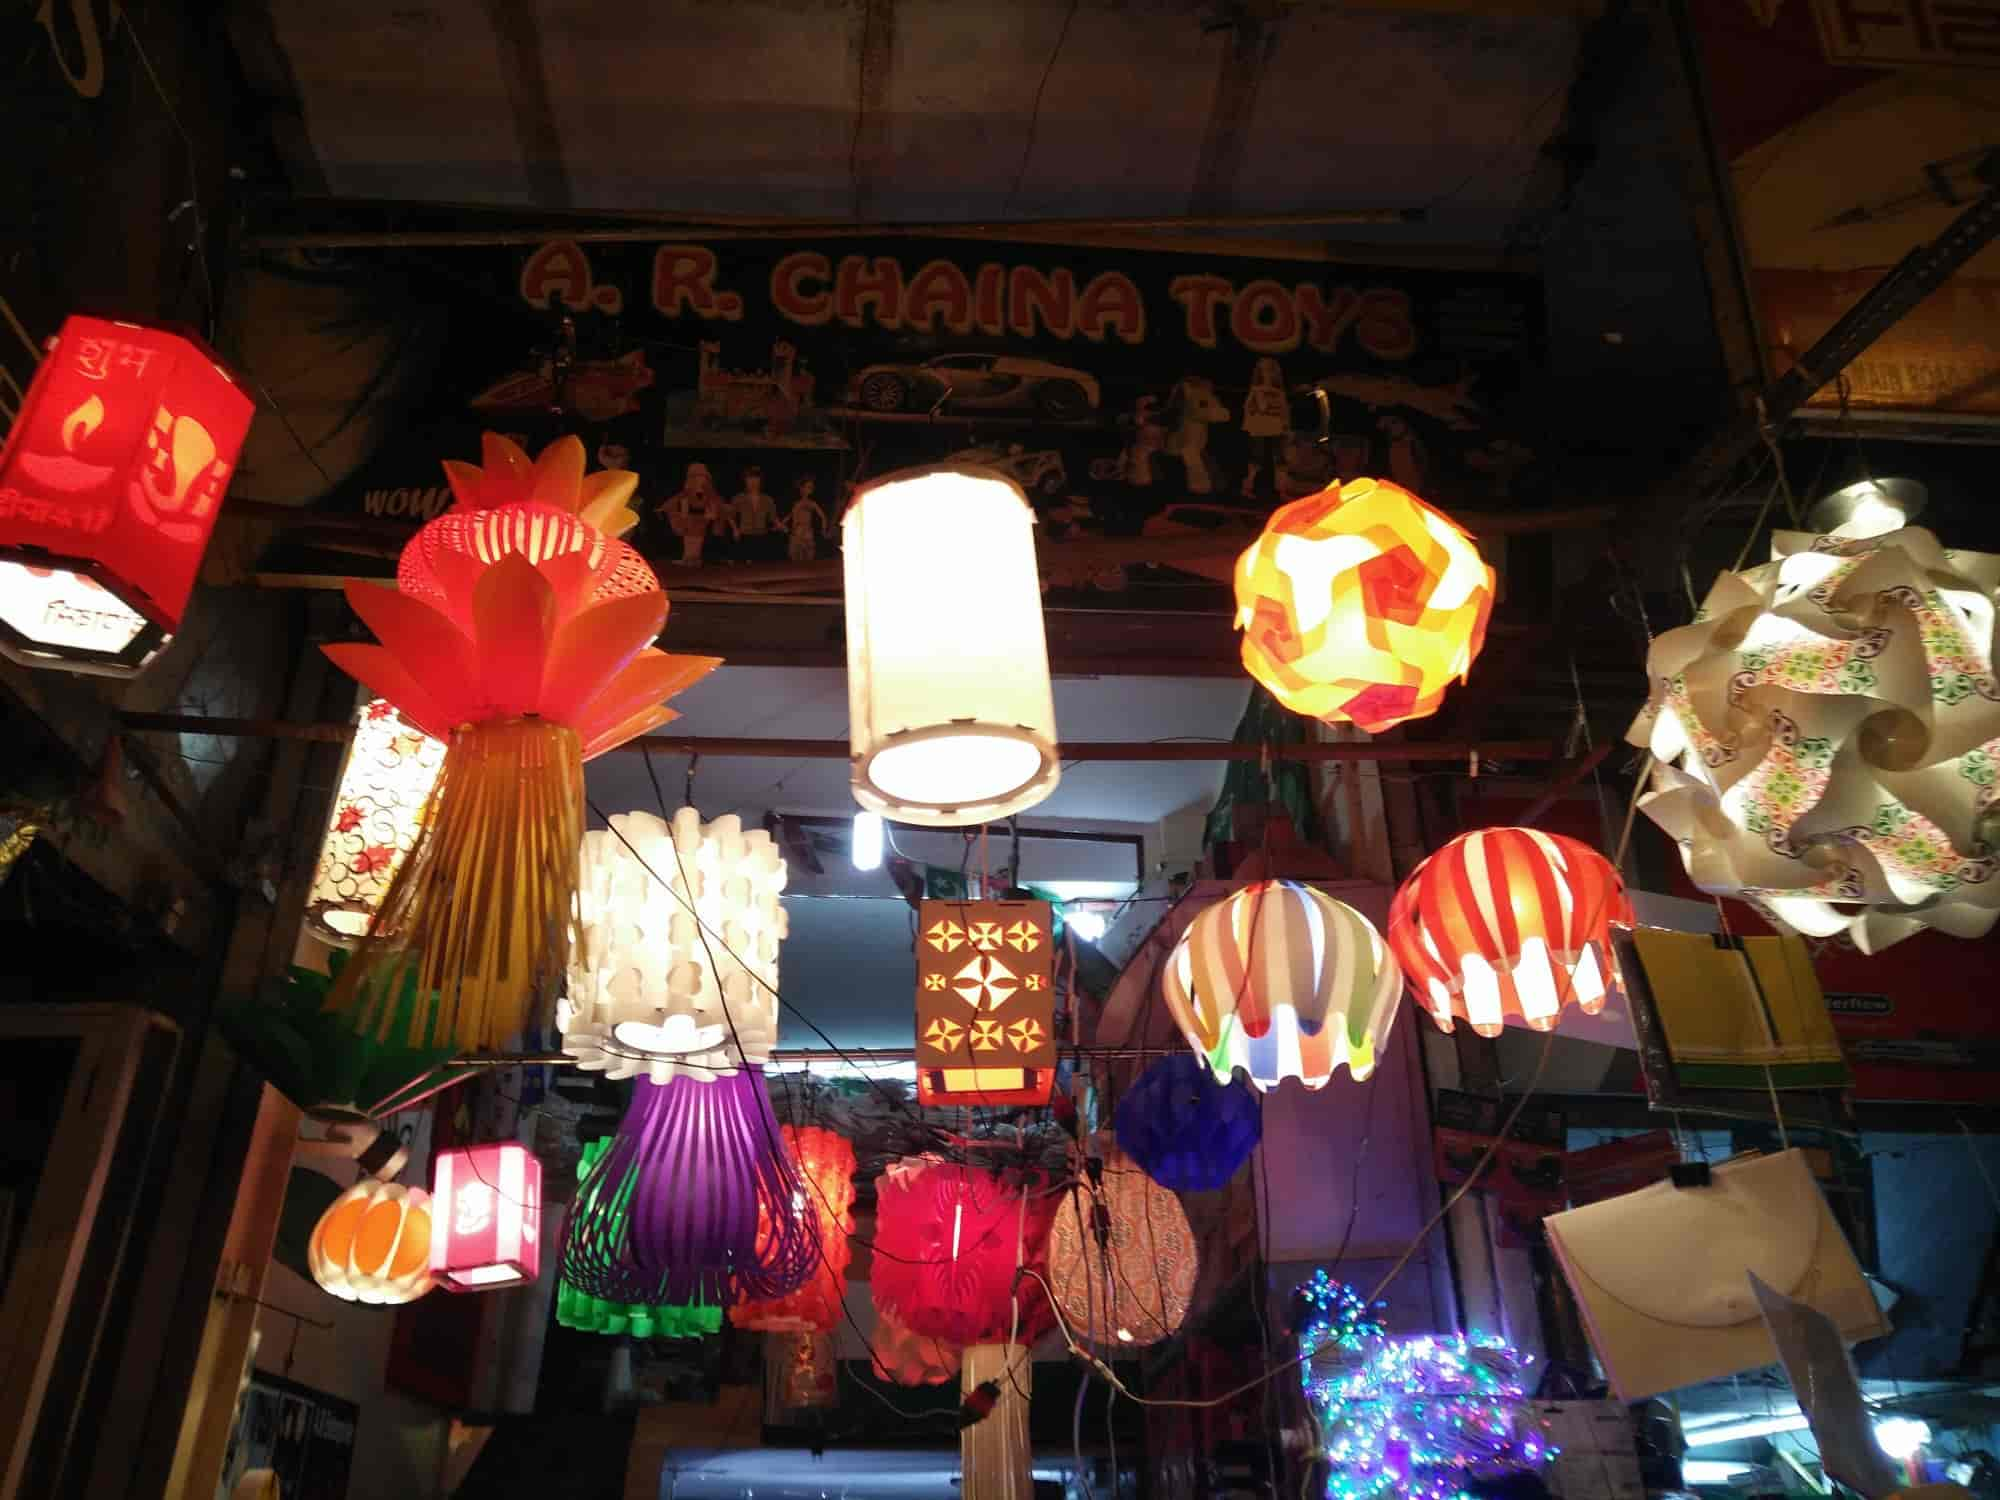 A R Cosmetic Decoration Lamps Sadar Bazar A R China Toys Lamps Cosmetic Wholesalers In Delhi Justdial